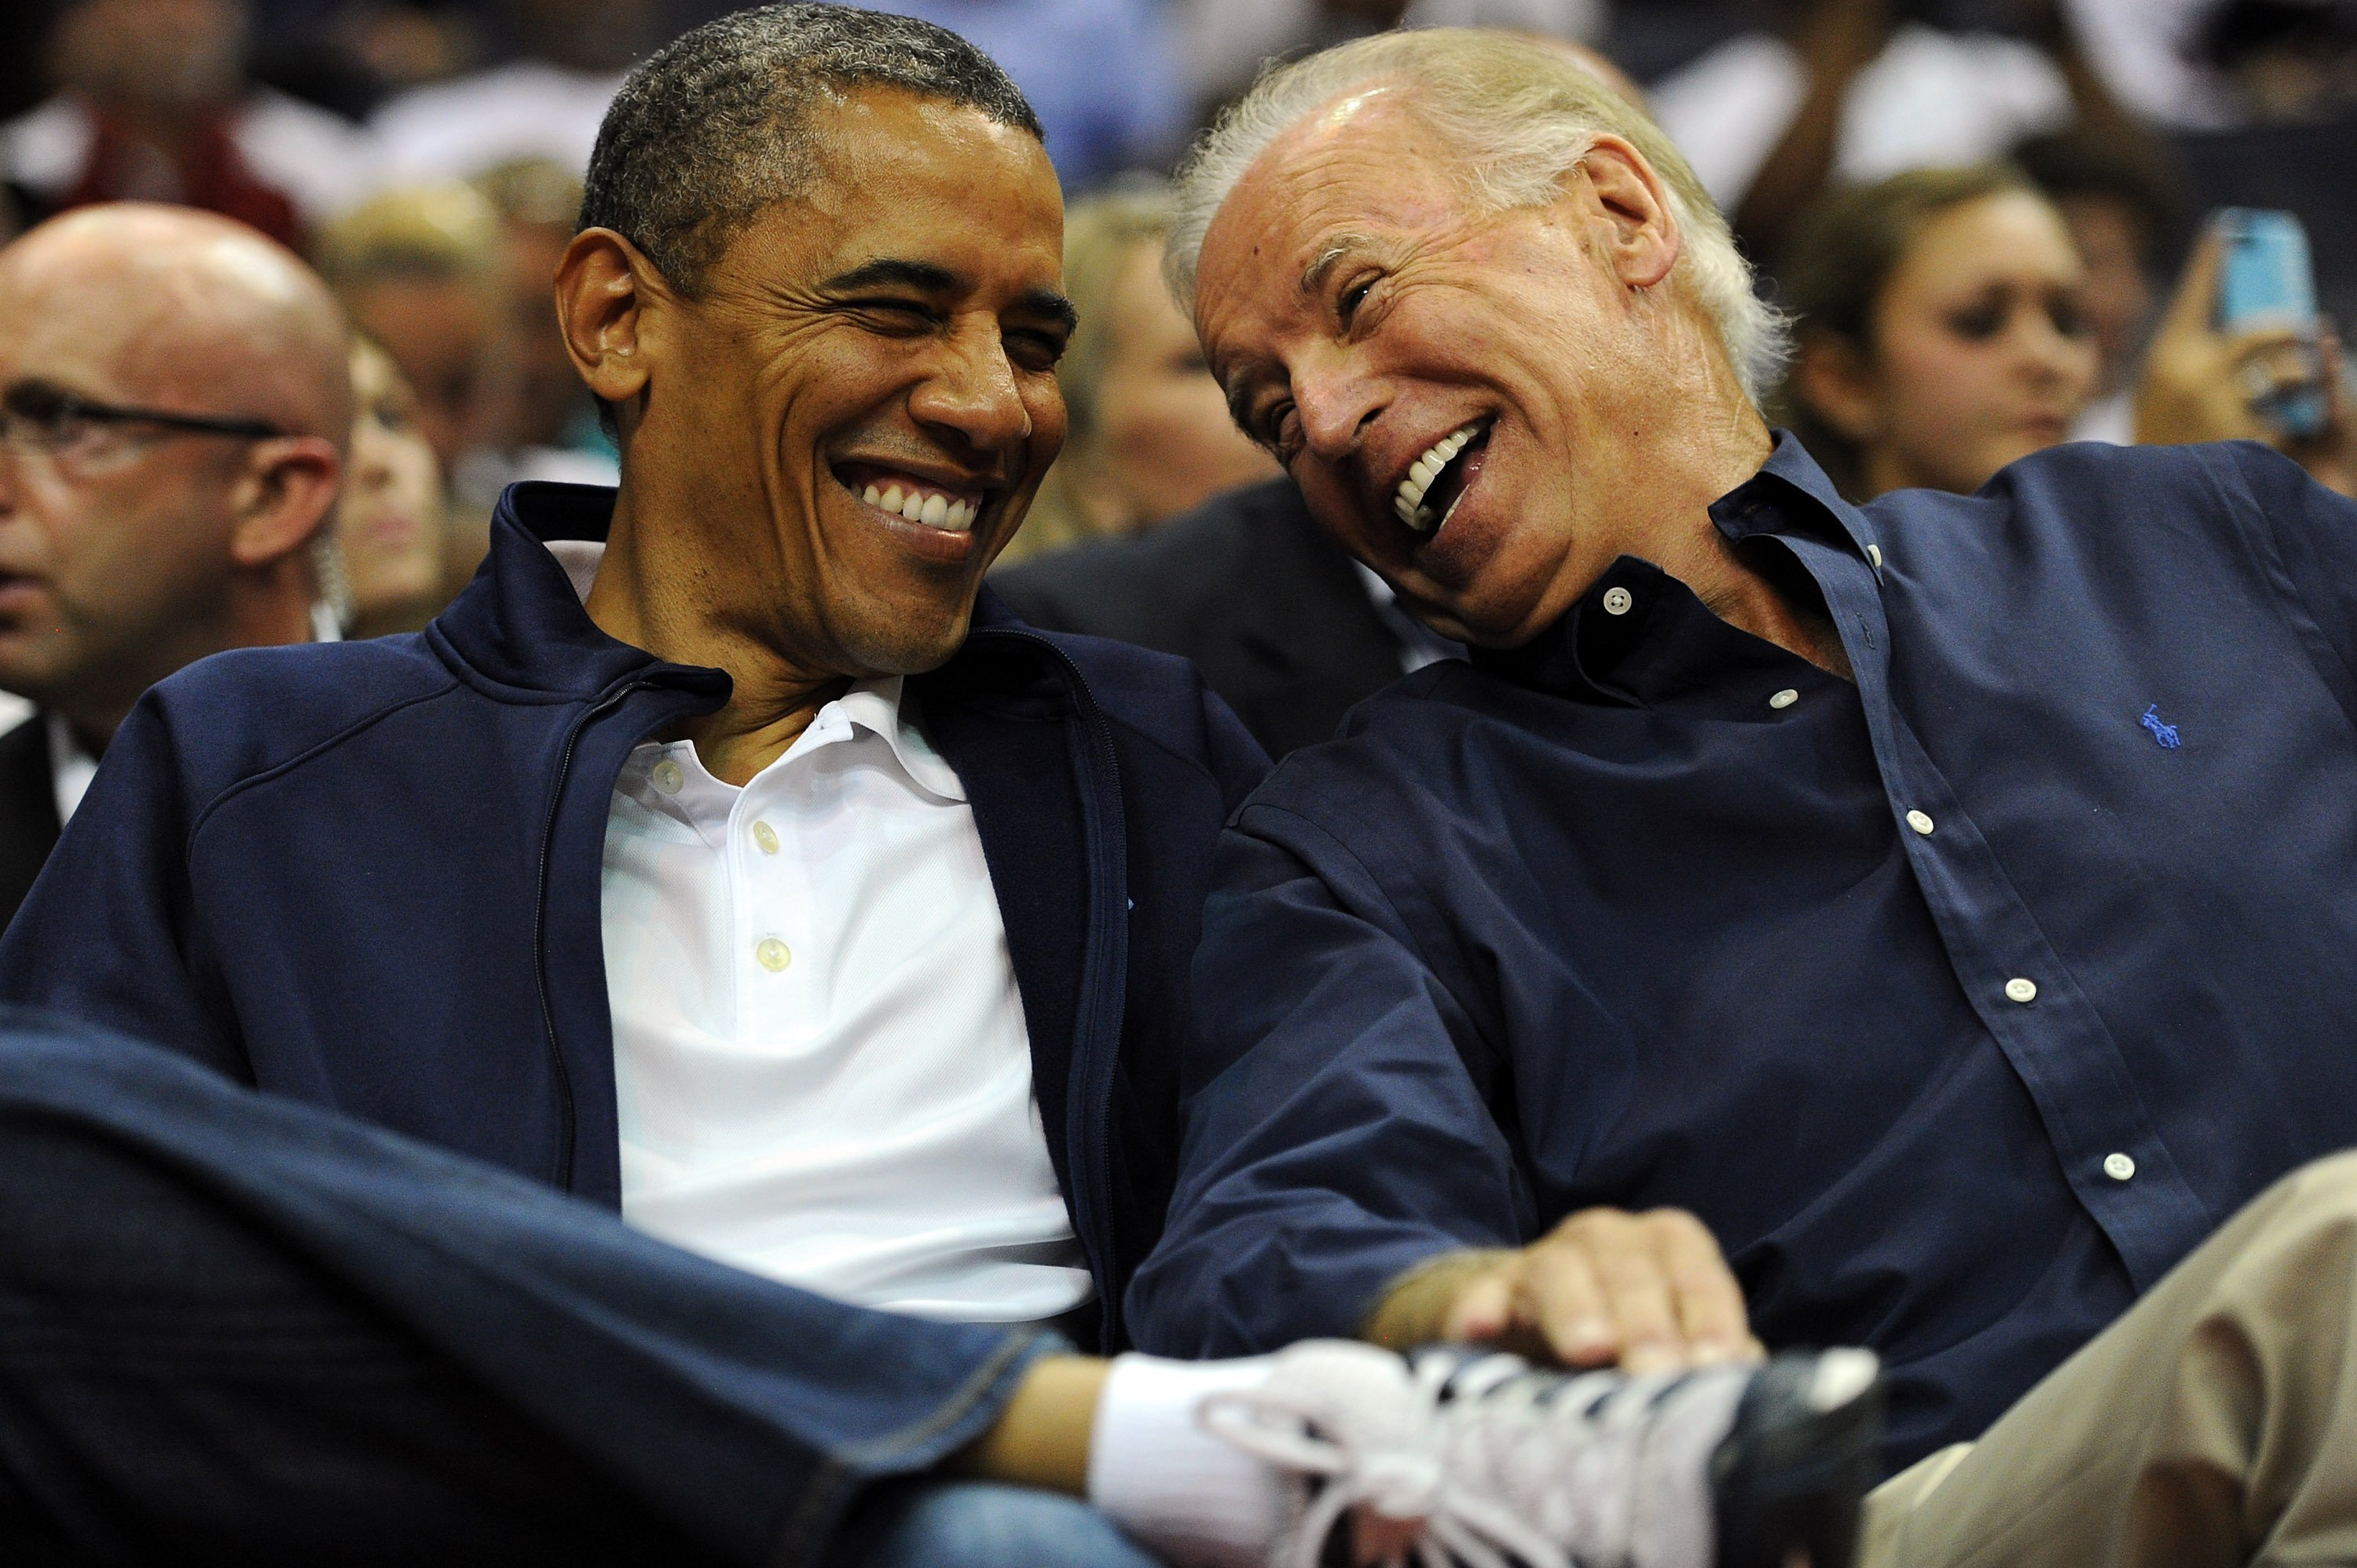 U.S. President Barack Obama and Vice President Joe Biden at the US Senior Men's National Team and Brazil play during a pre-Olympic exhibition basketball game on July 16, 2012 l Source: Getty Images